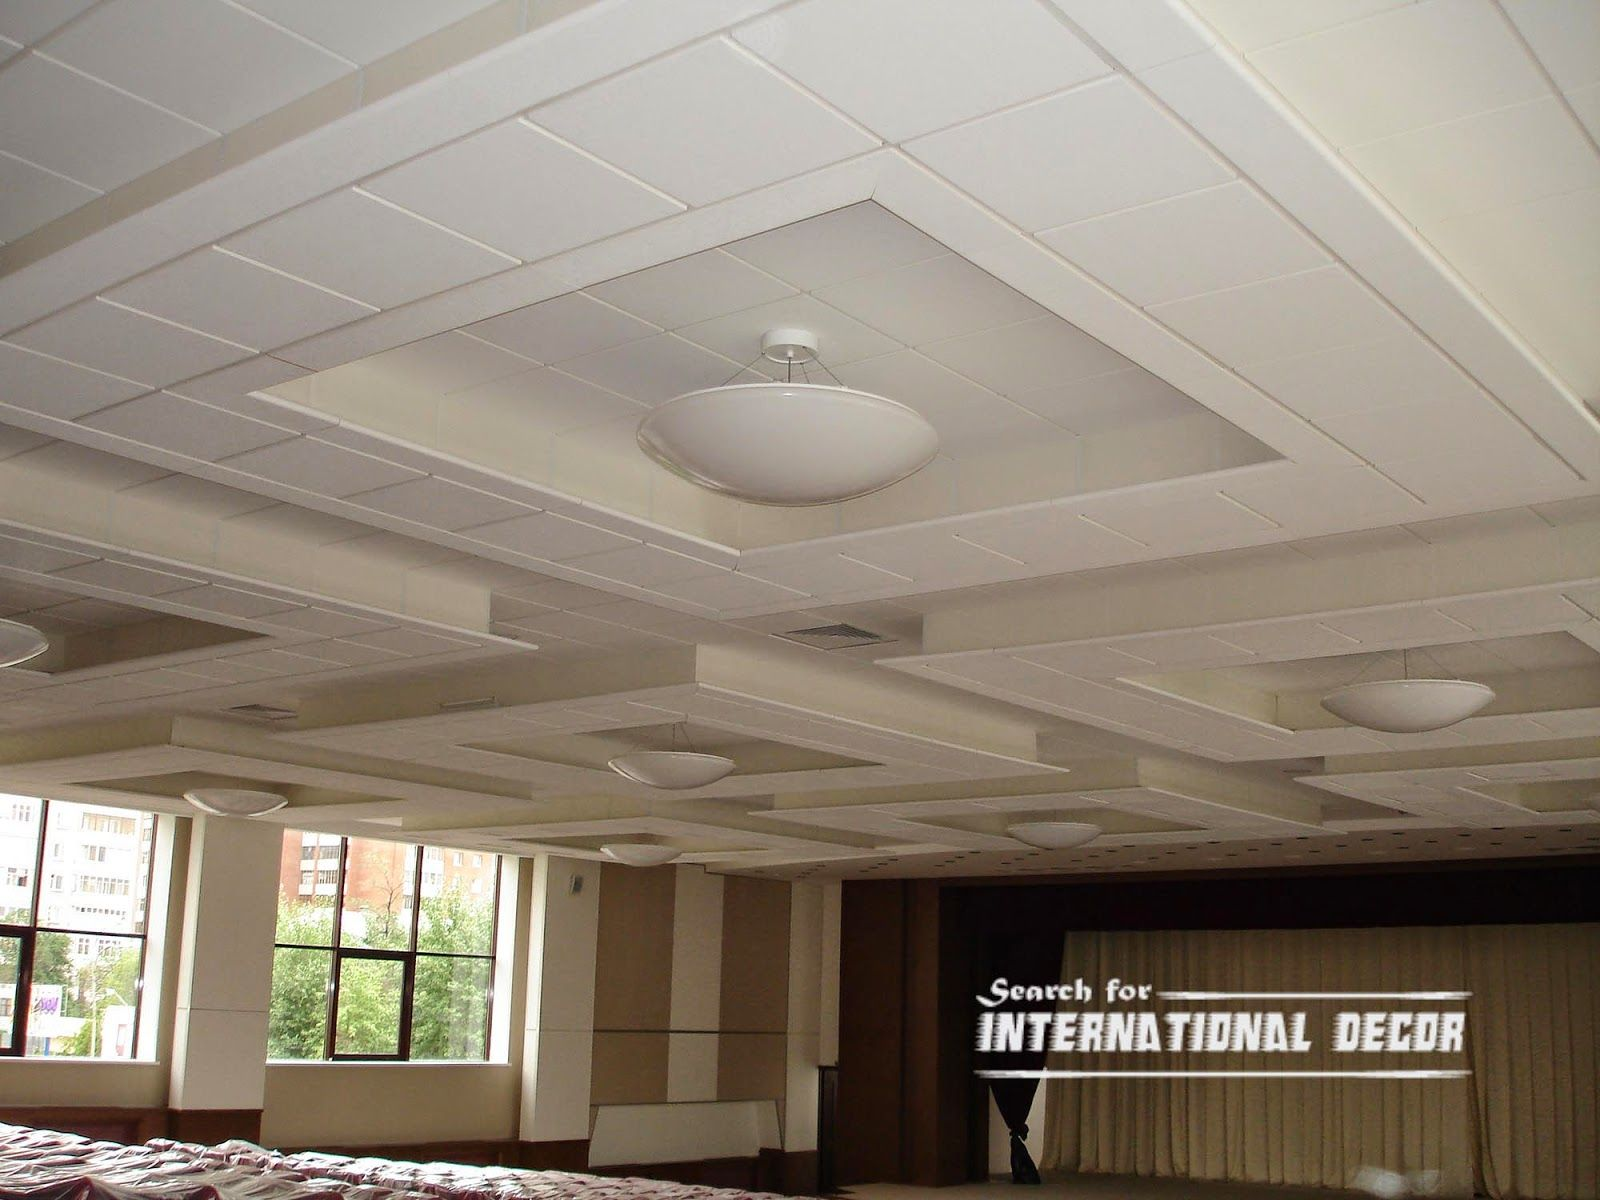 p ceiling decor and sandrift home canada tiles accessories inch categories the en acoustical depot x feet